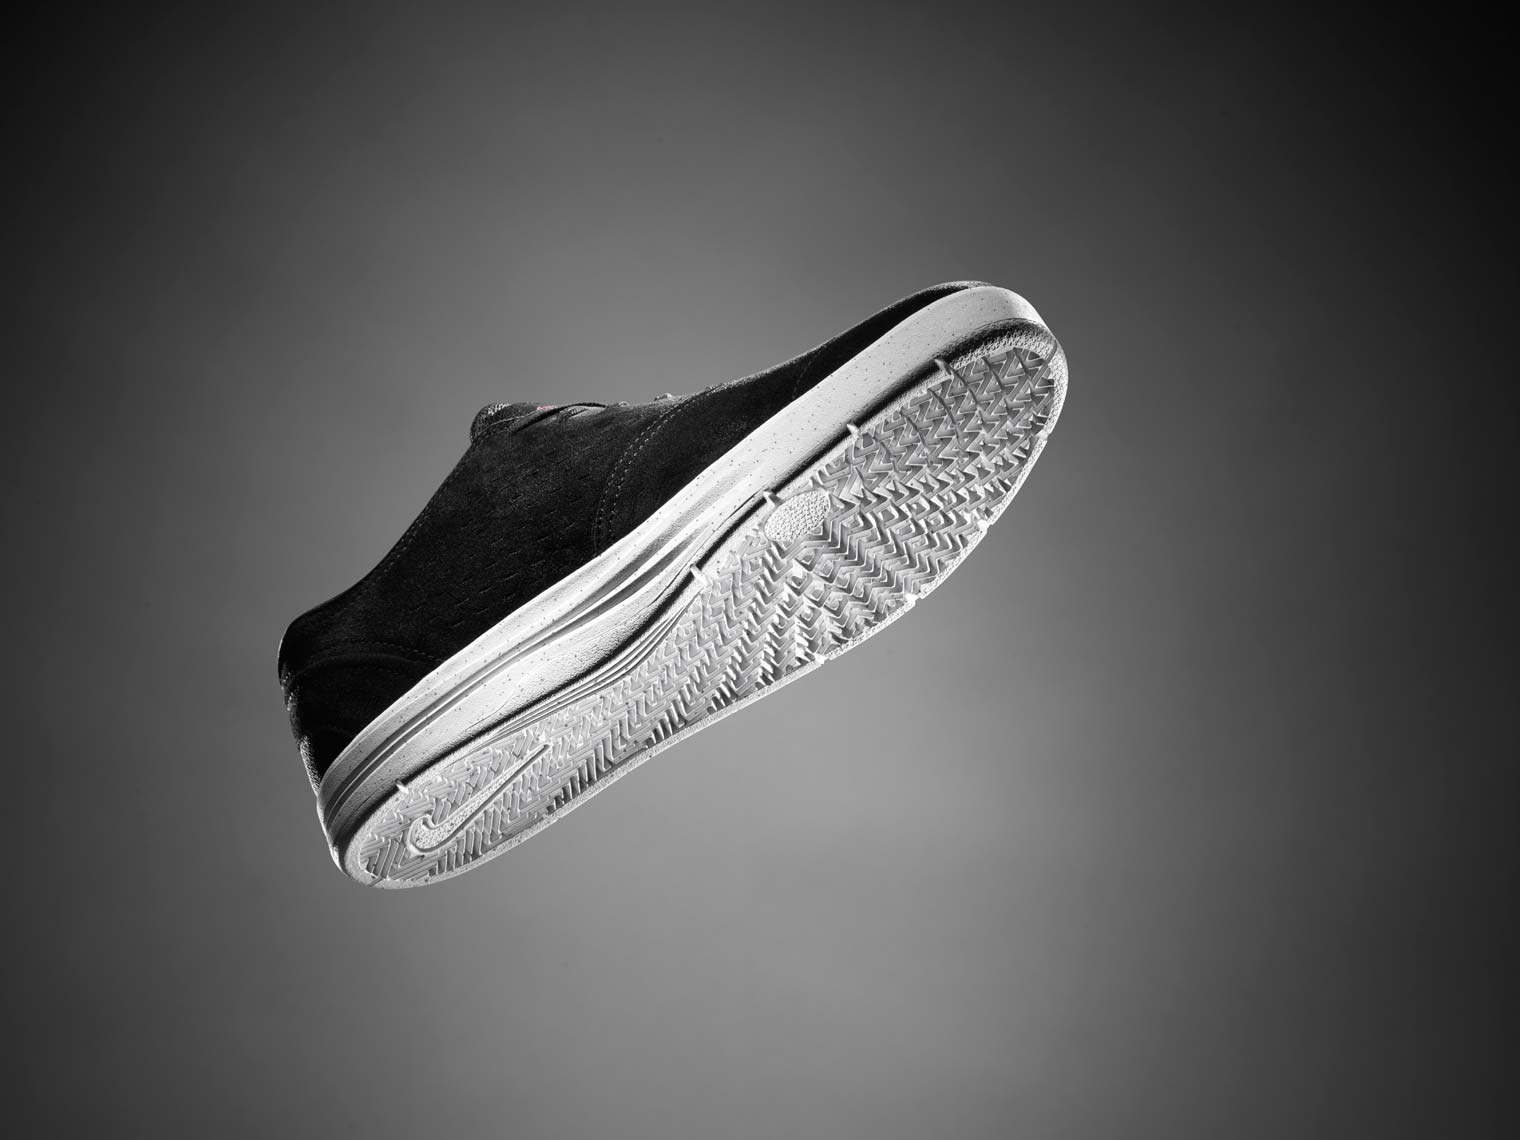 looking at a nikeSB Janoski shoe from below on a great background